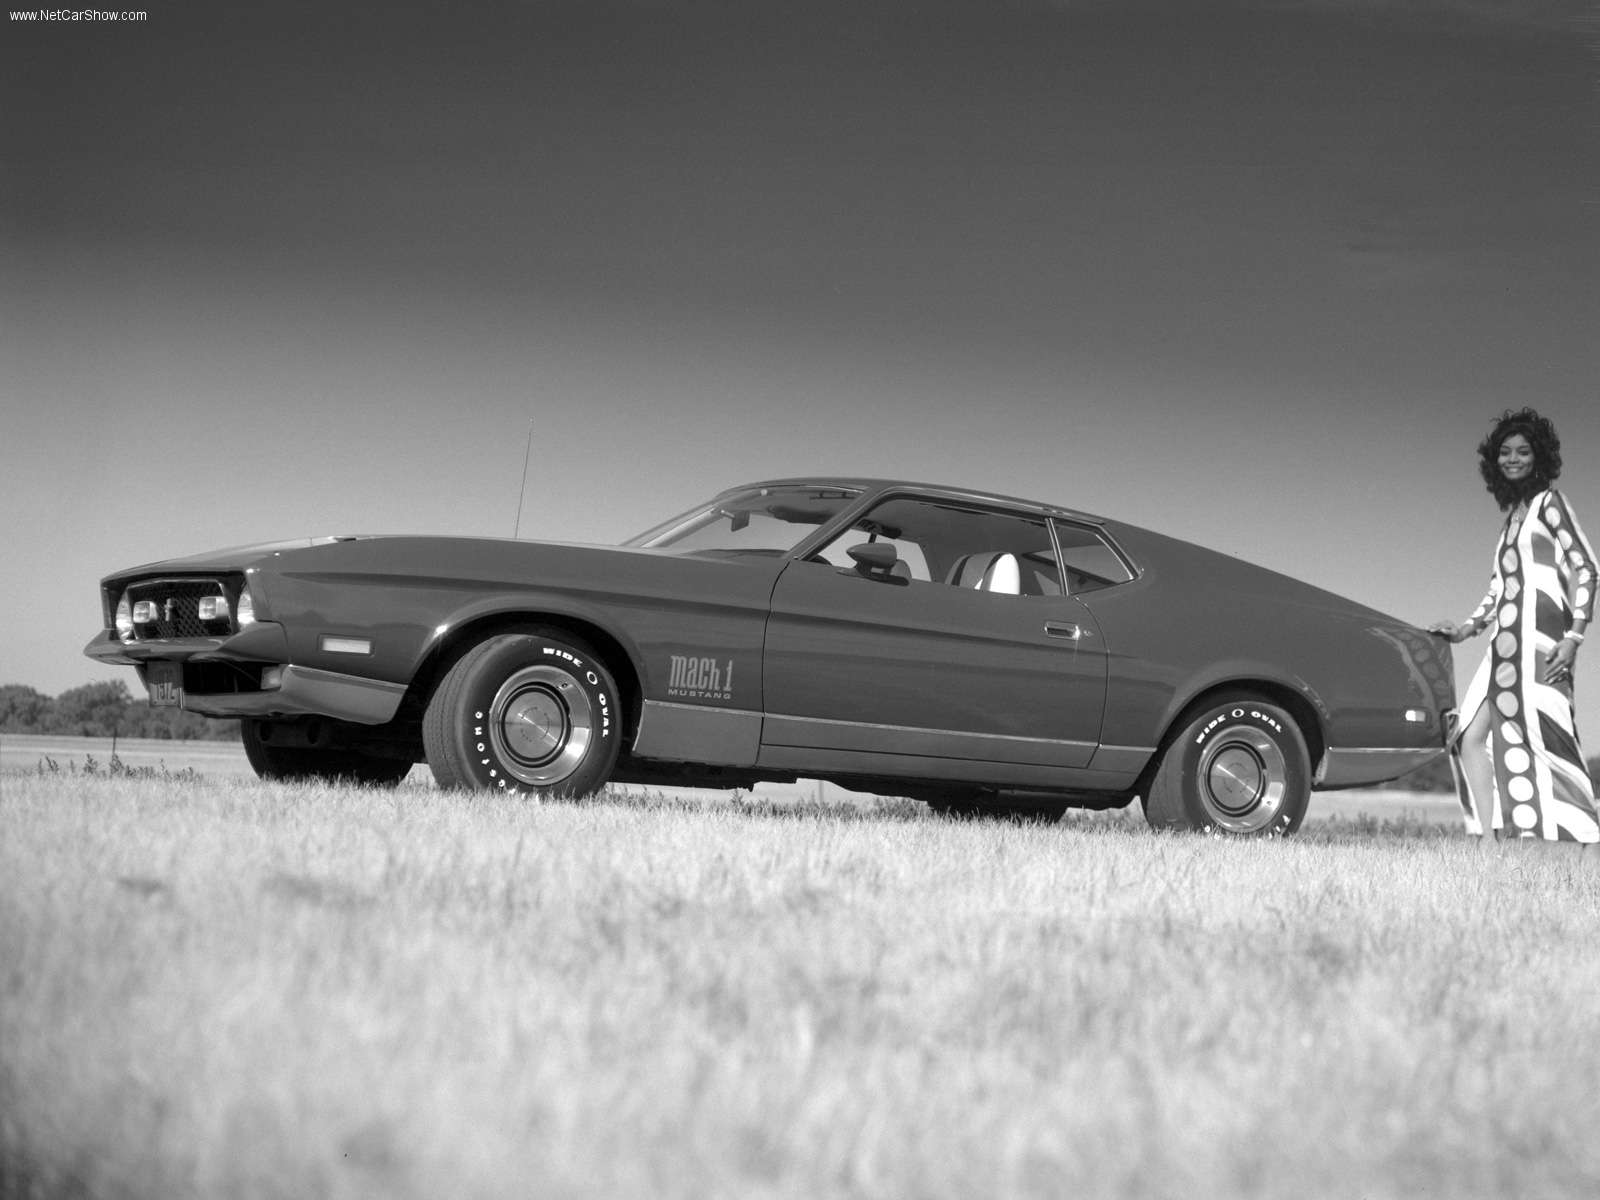 Ford Mustang Mach I photos Gallery with 5 pics CarsBase